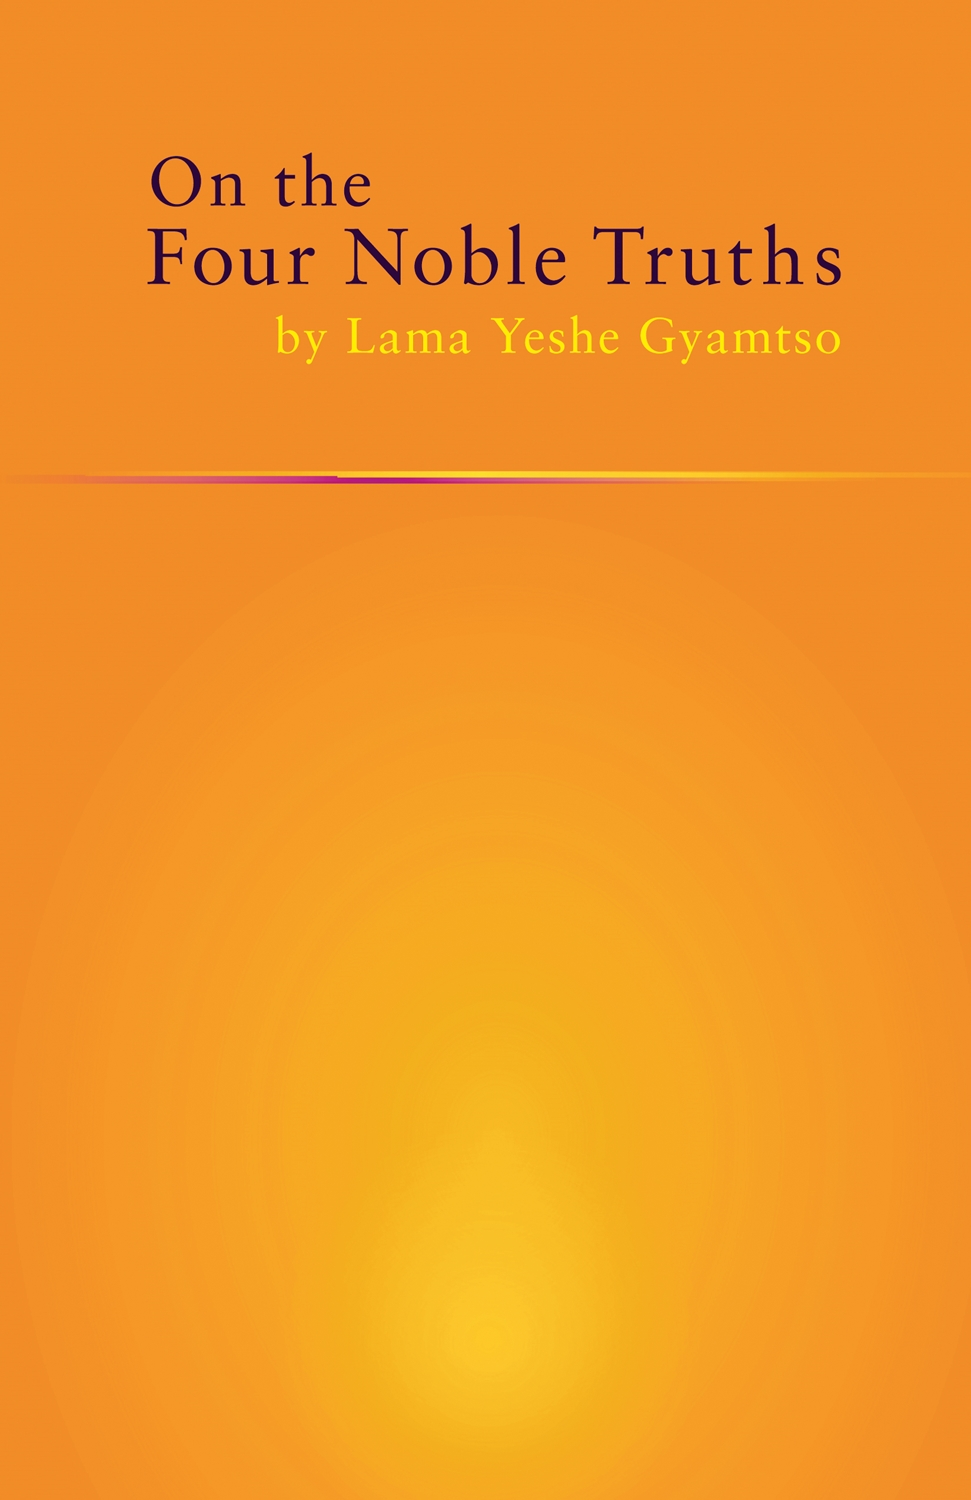 the four noble truths paper The four noble truths are the most fundamental teaching of the buddha deceptively simple, they actually provide a profound explanation of human unhappiness, both gross and subtle, and how to attain increasingly positive states of.